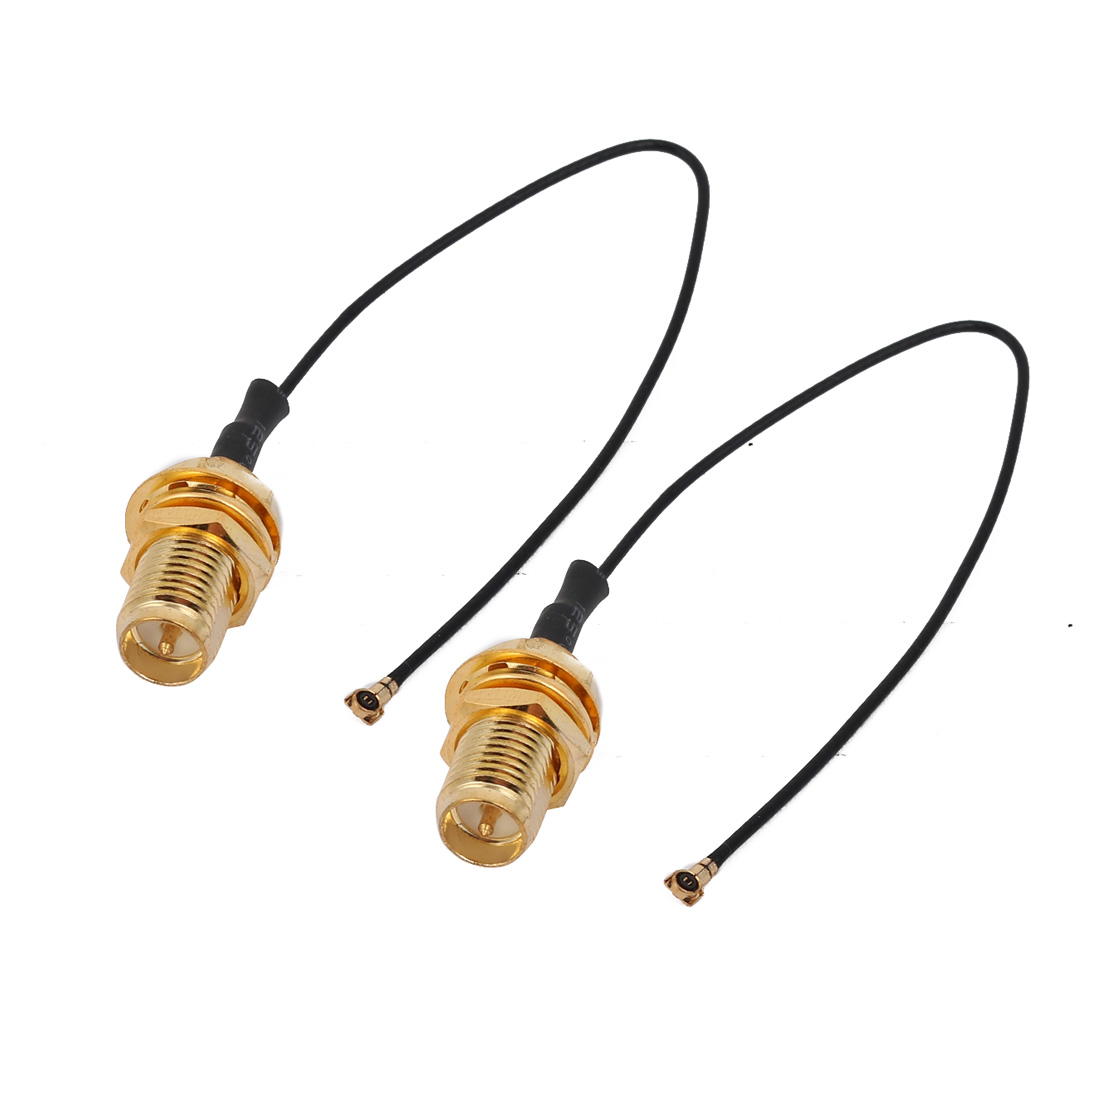 2pcs RF0.81 IPEX 4 to RP-SMA Antenna WiFi Pigtail Cable 10cm Long for Router